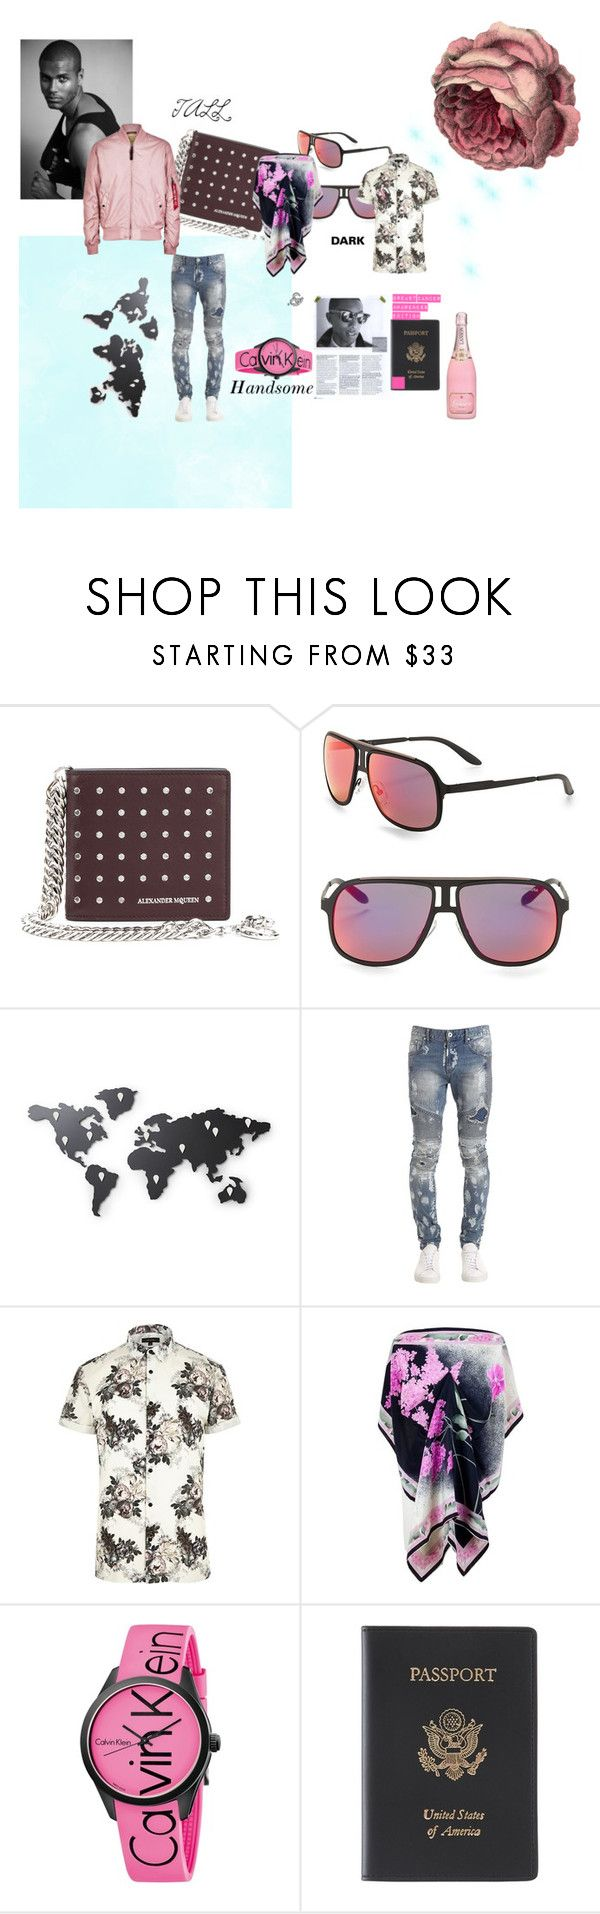 """""""Tall,Dark, & Handsome"""" by mikewatts ❤ liked on Polyvore featuring Alexander McQueen, Carrera, Umbra, Represent, River Island, Calvin Klein, Royce Leather, Alpha Industries, men's fashion and menswear"""